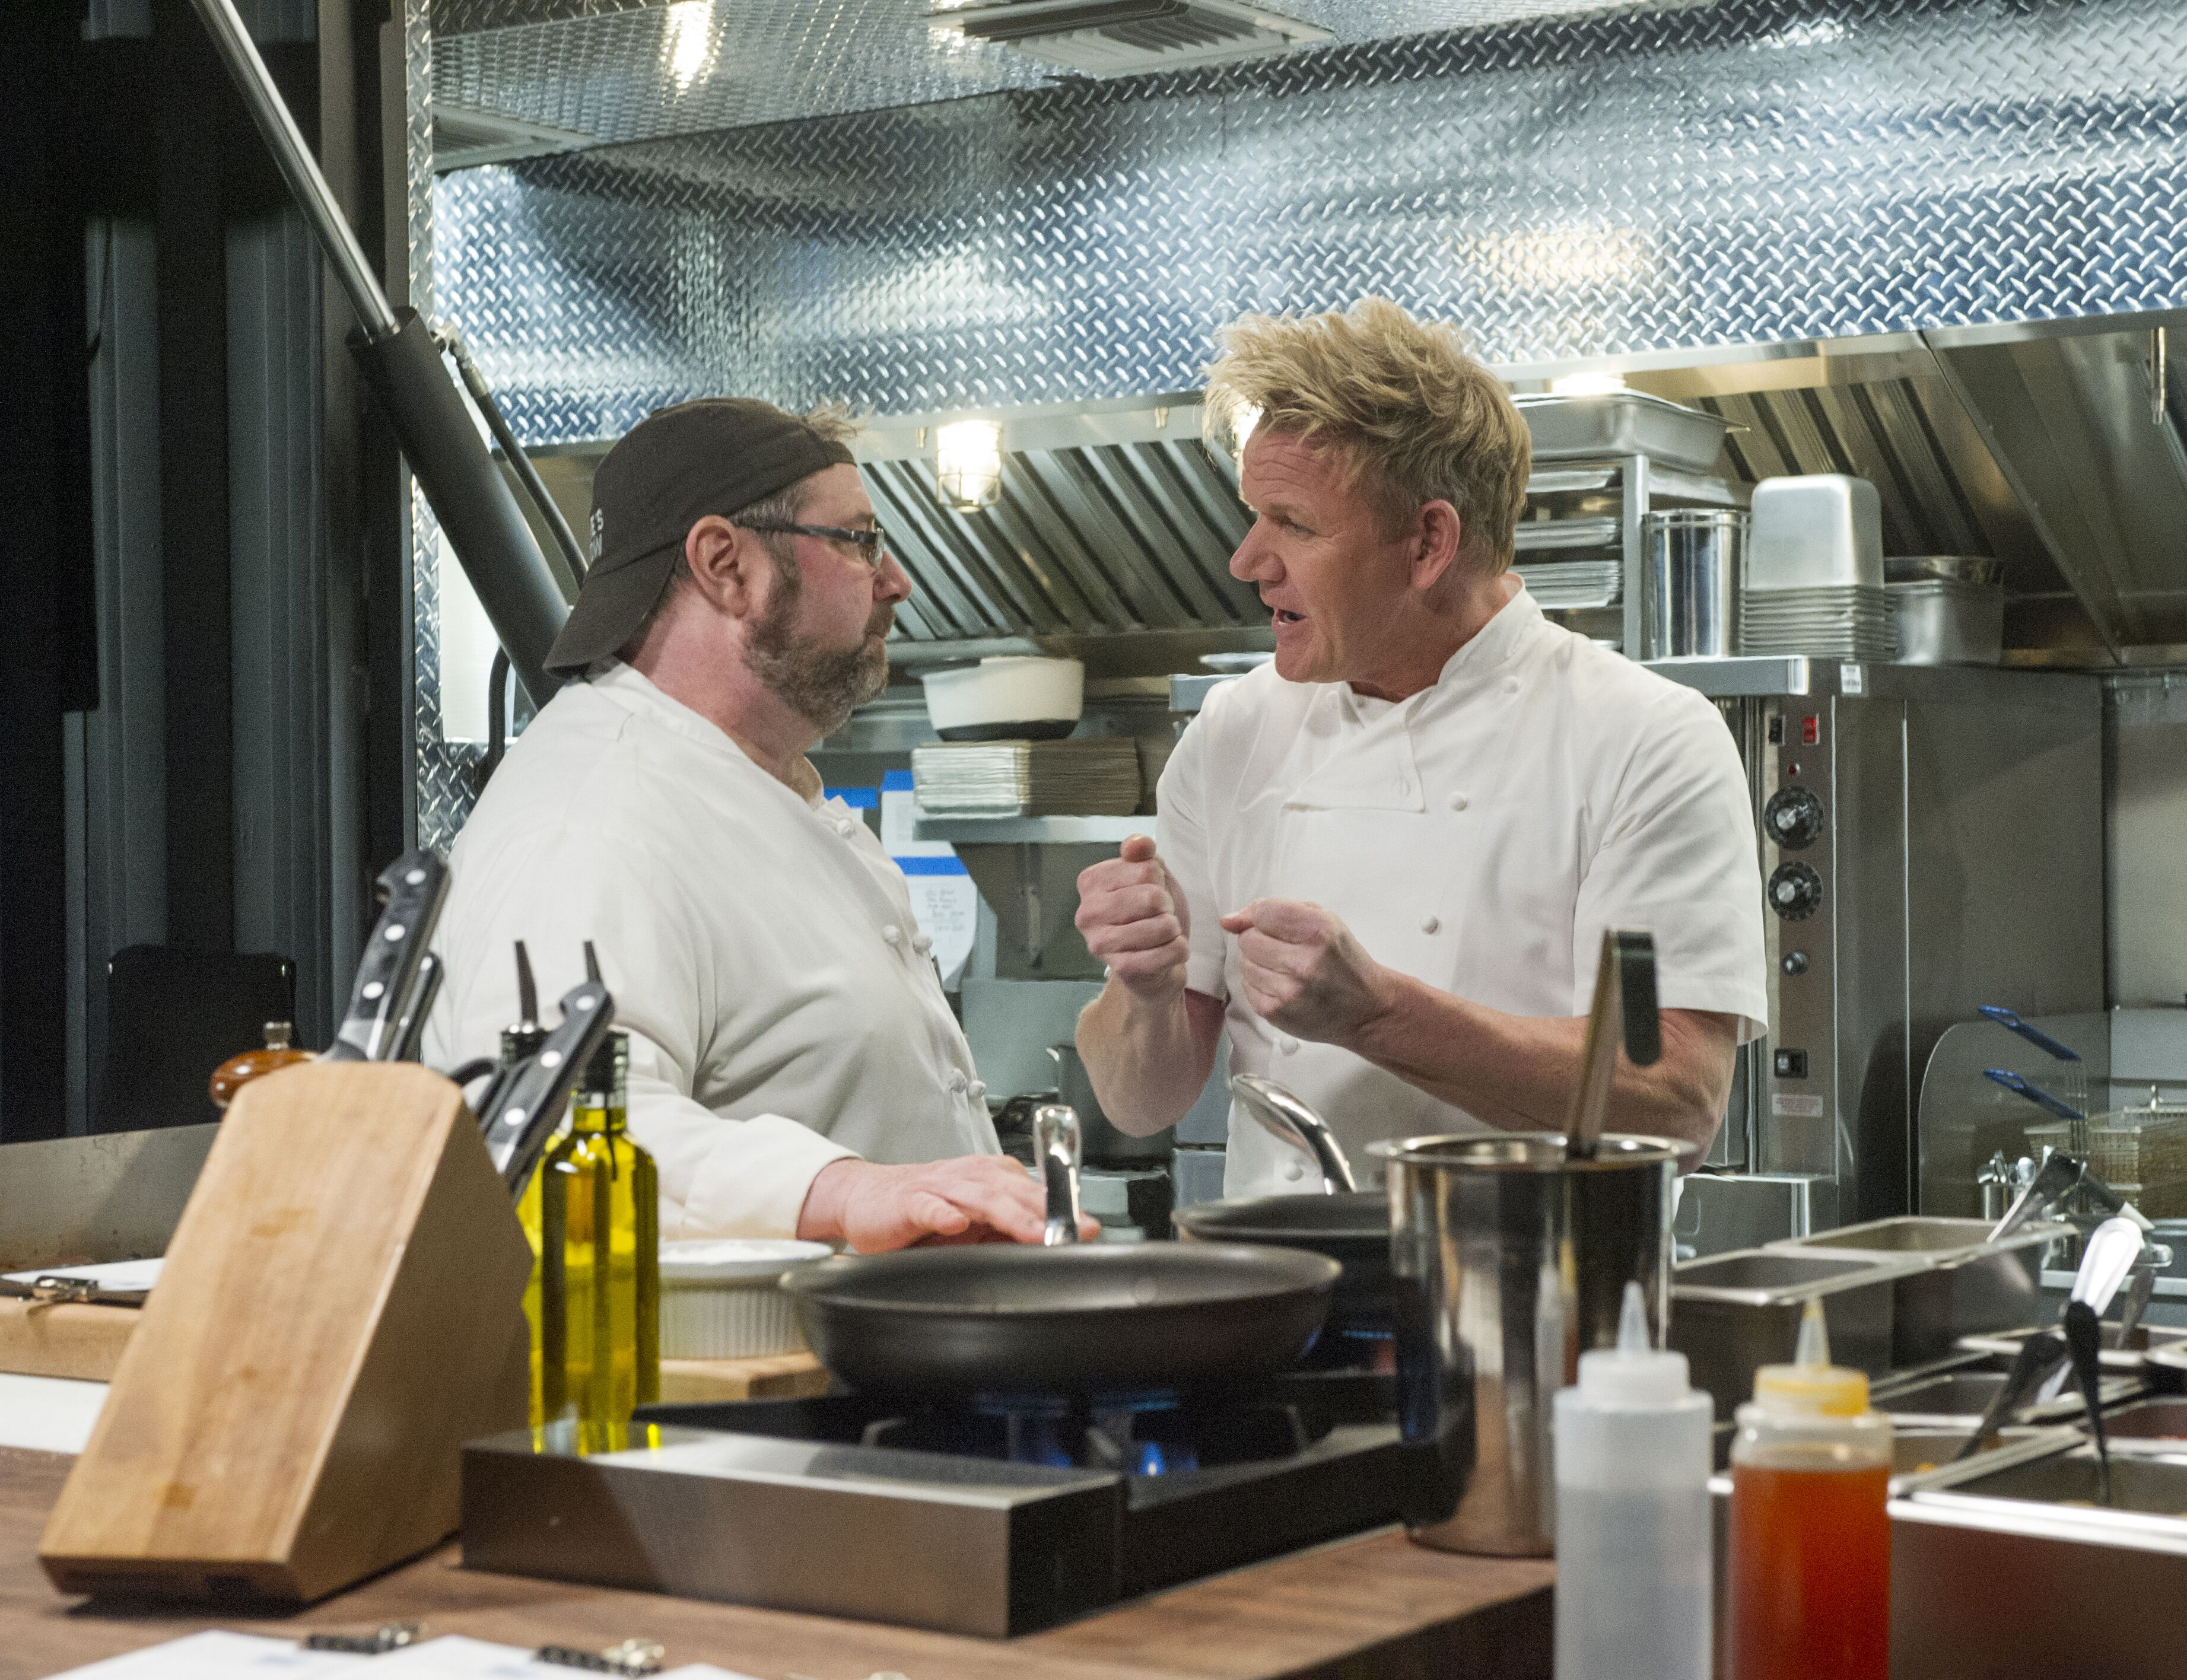 Gordon Ramsay's 24 Hours to Hell and Back Stone's Throw preview